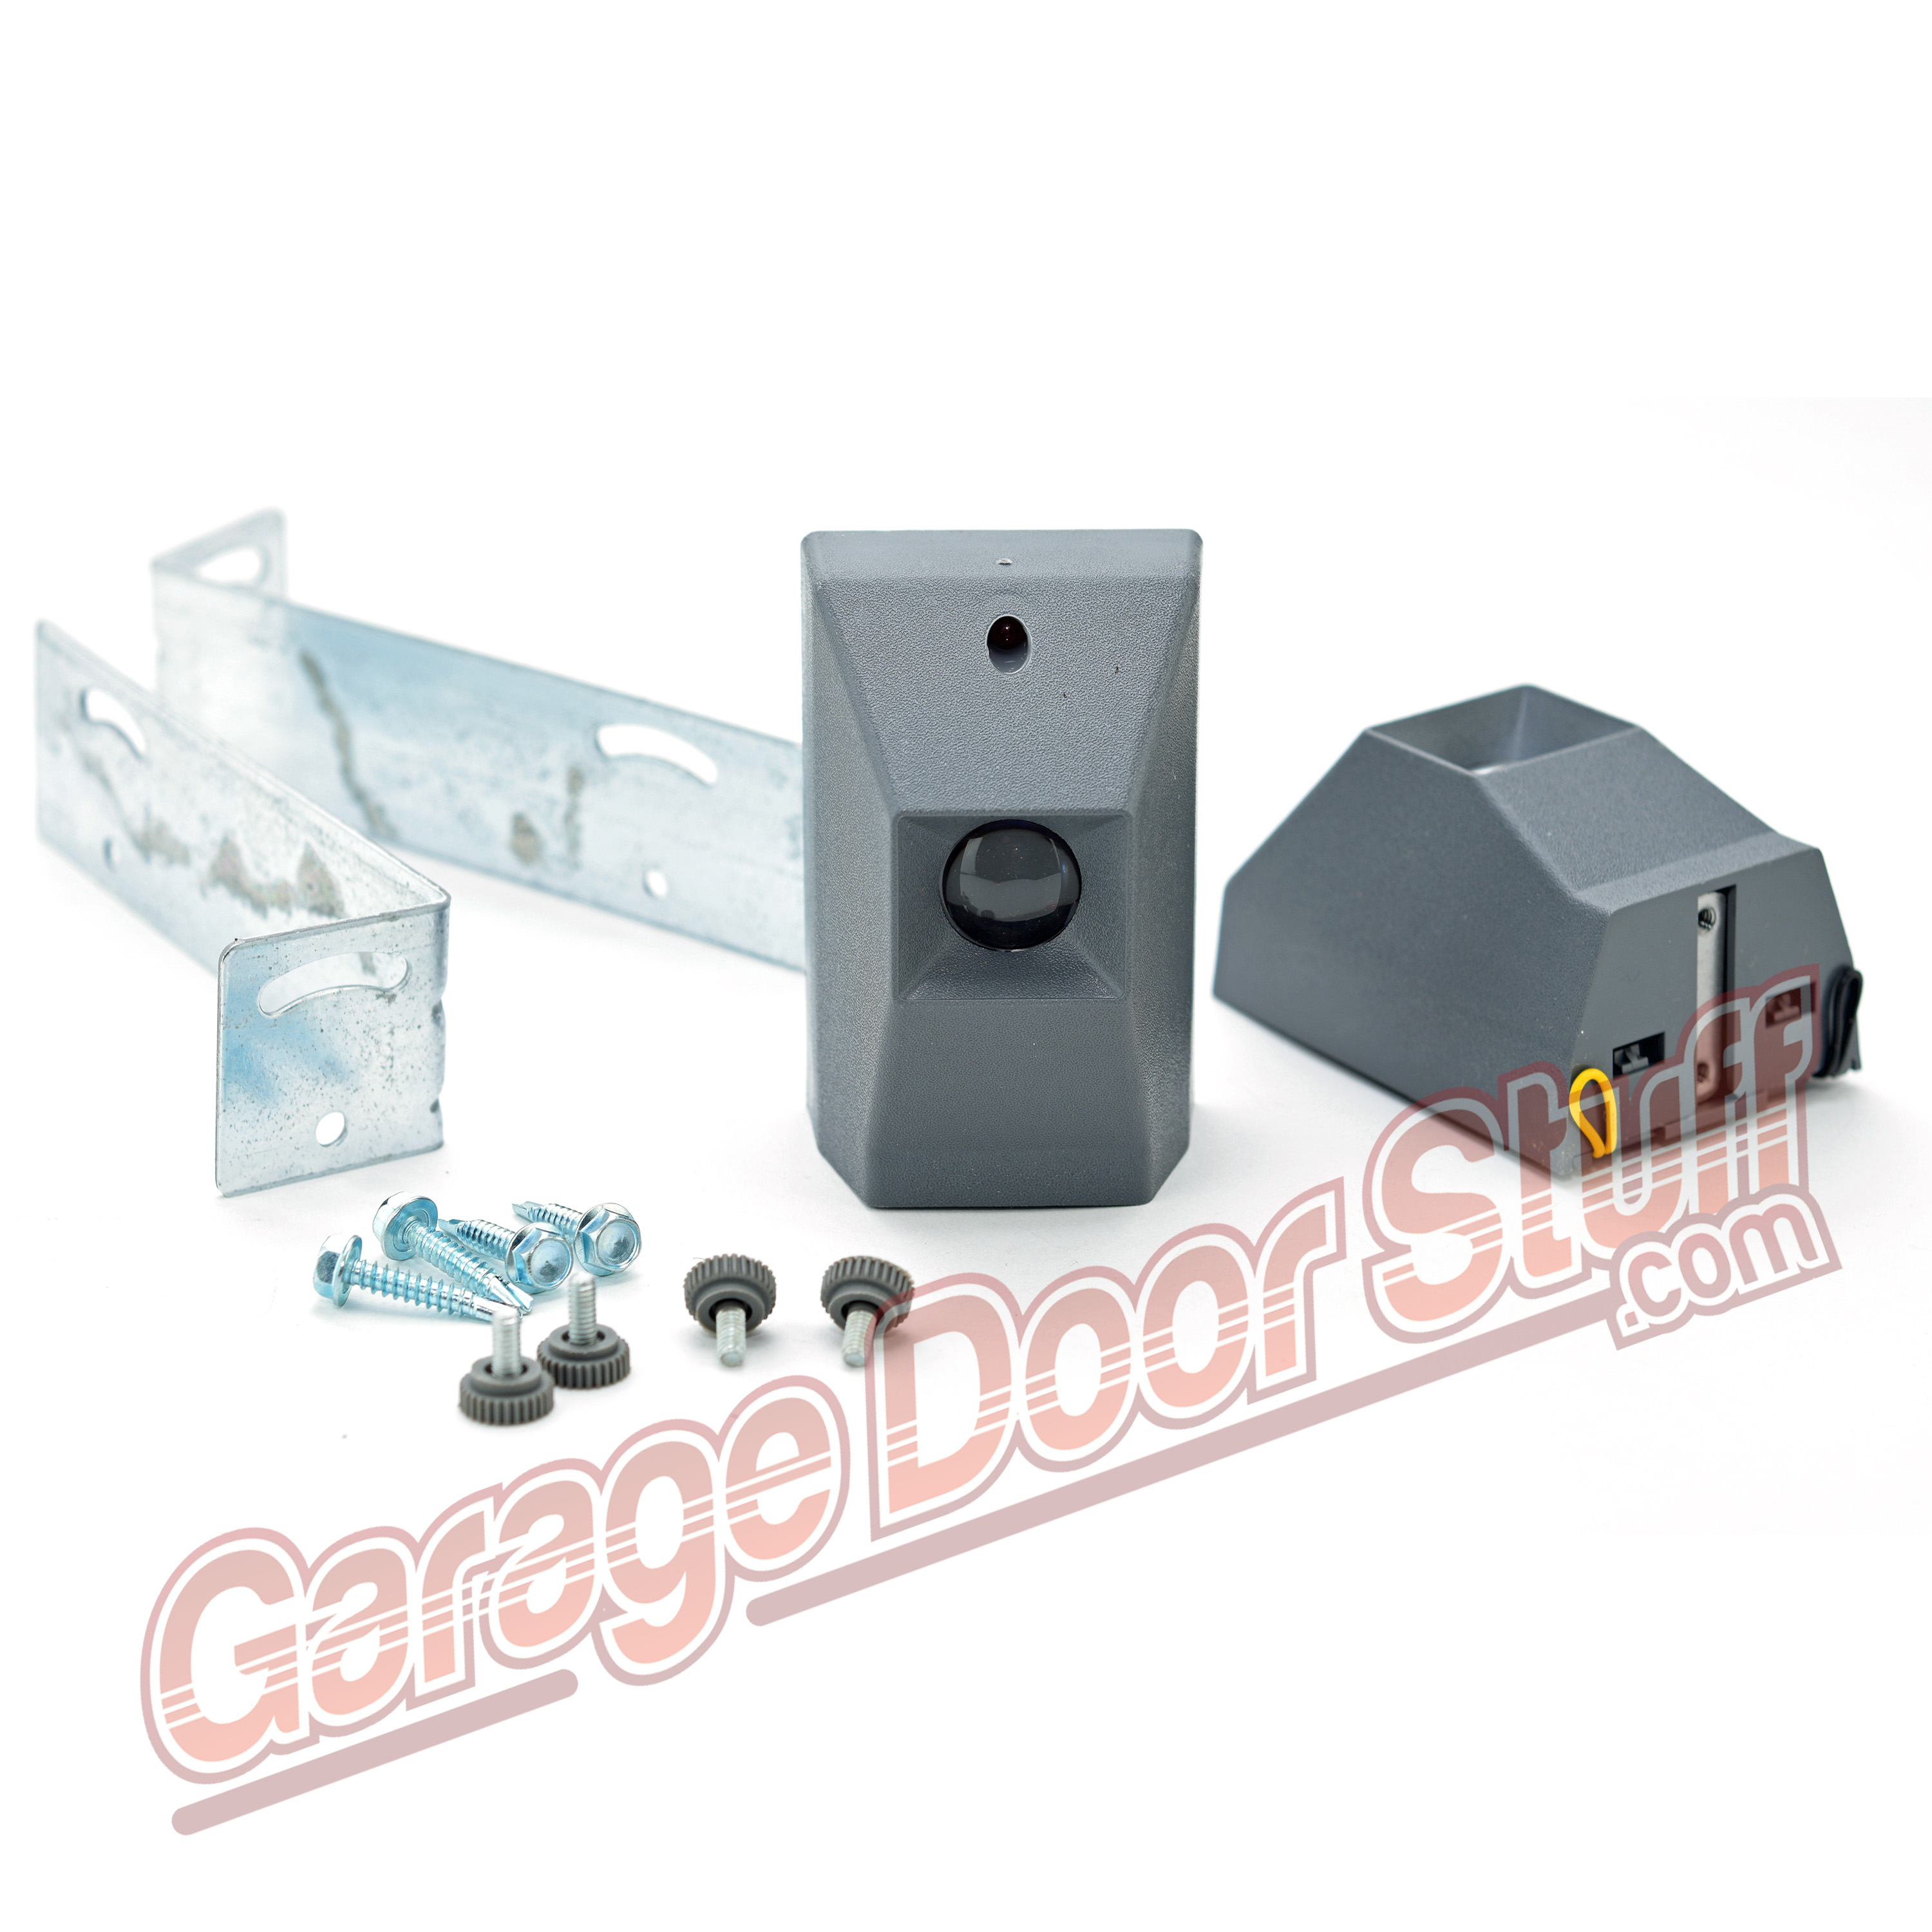 garage pictures doors trolley idea ideas full o adjustment opener size chain remote remarkable problem matic of scenic slide moore door parts designs